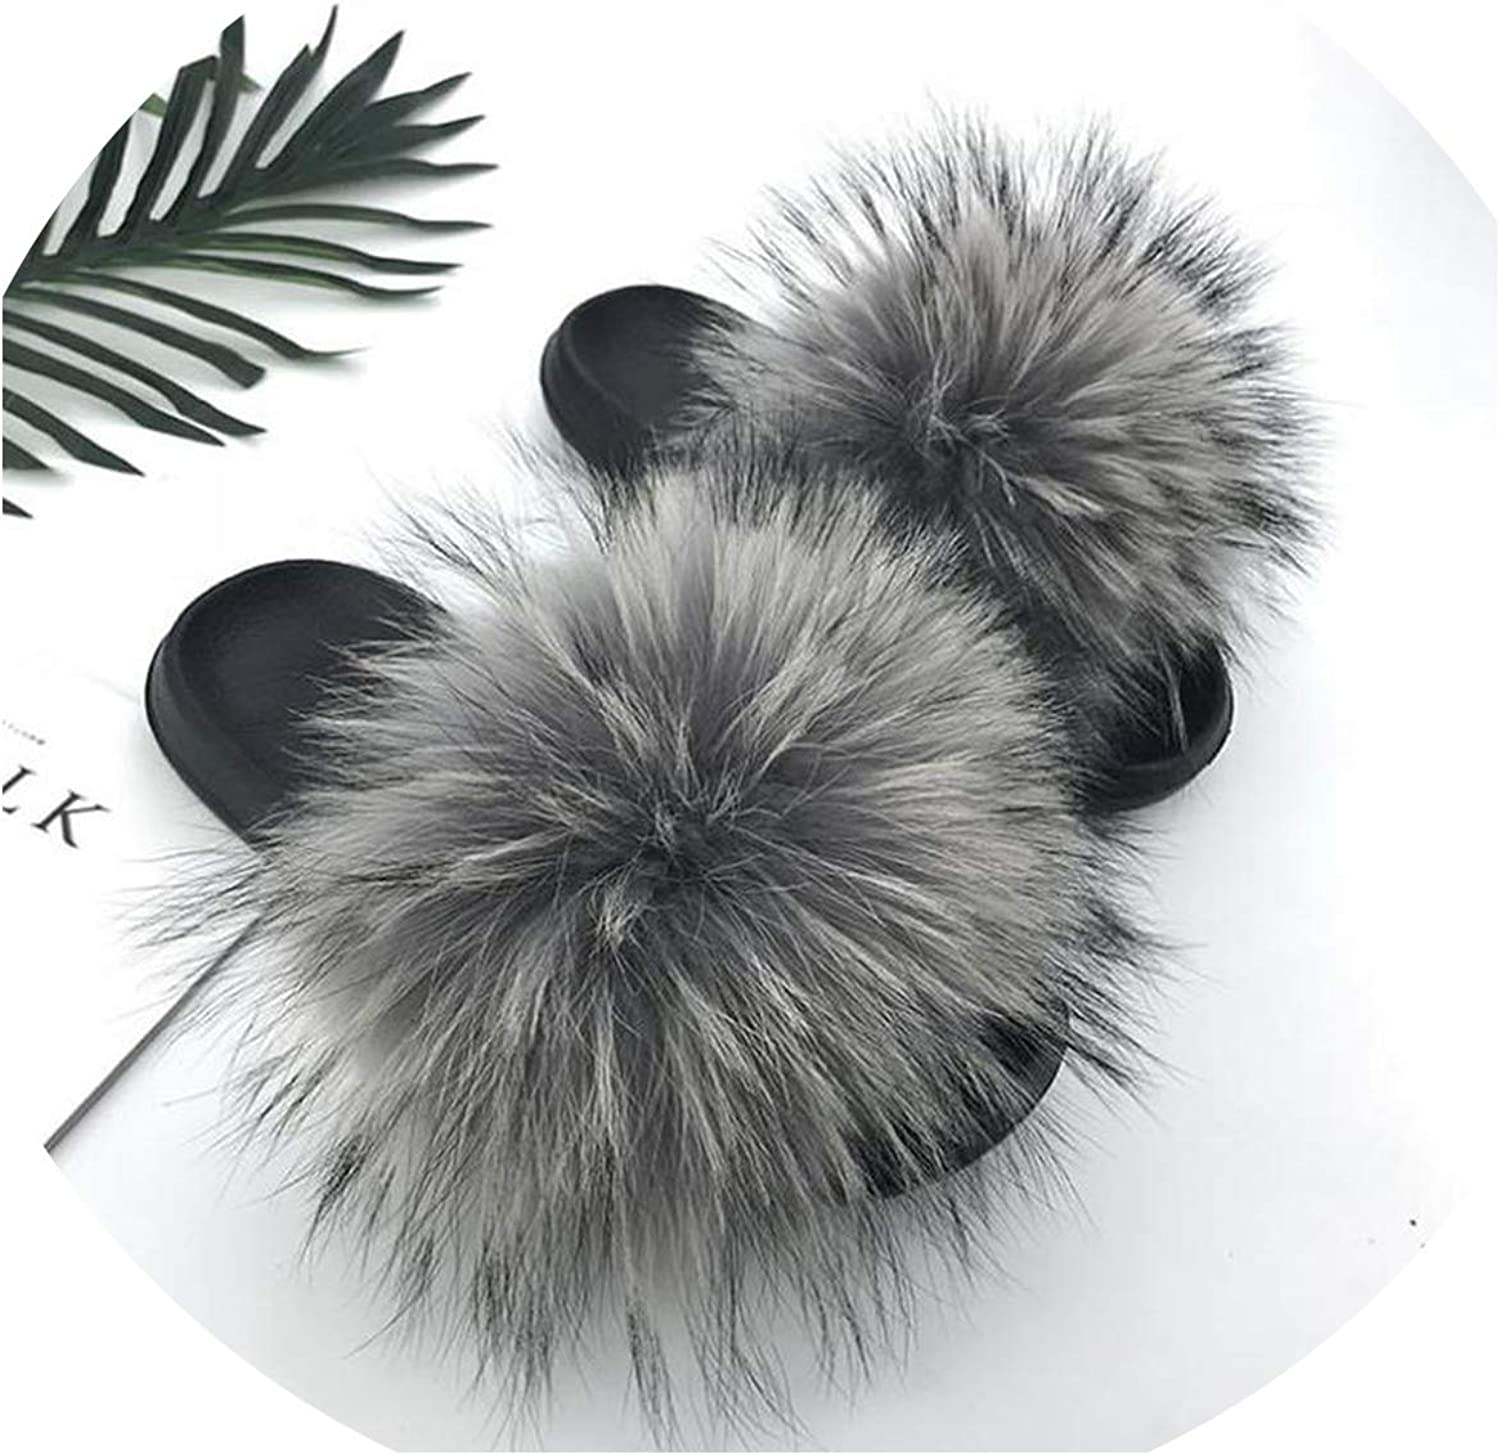 Just XiaoZhouZhou Real Raccoon Fur Slippers Women Sliders Casual Fox Hair Flat Fluffy Fashion Home Summer Big Size 45 Furry Flip Flops shoes,Grey 2,9.5